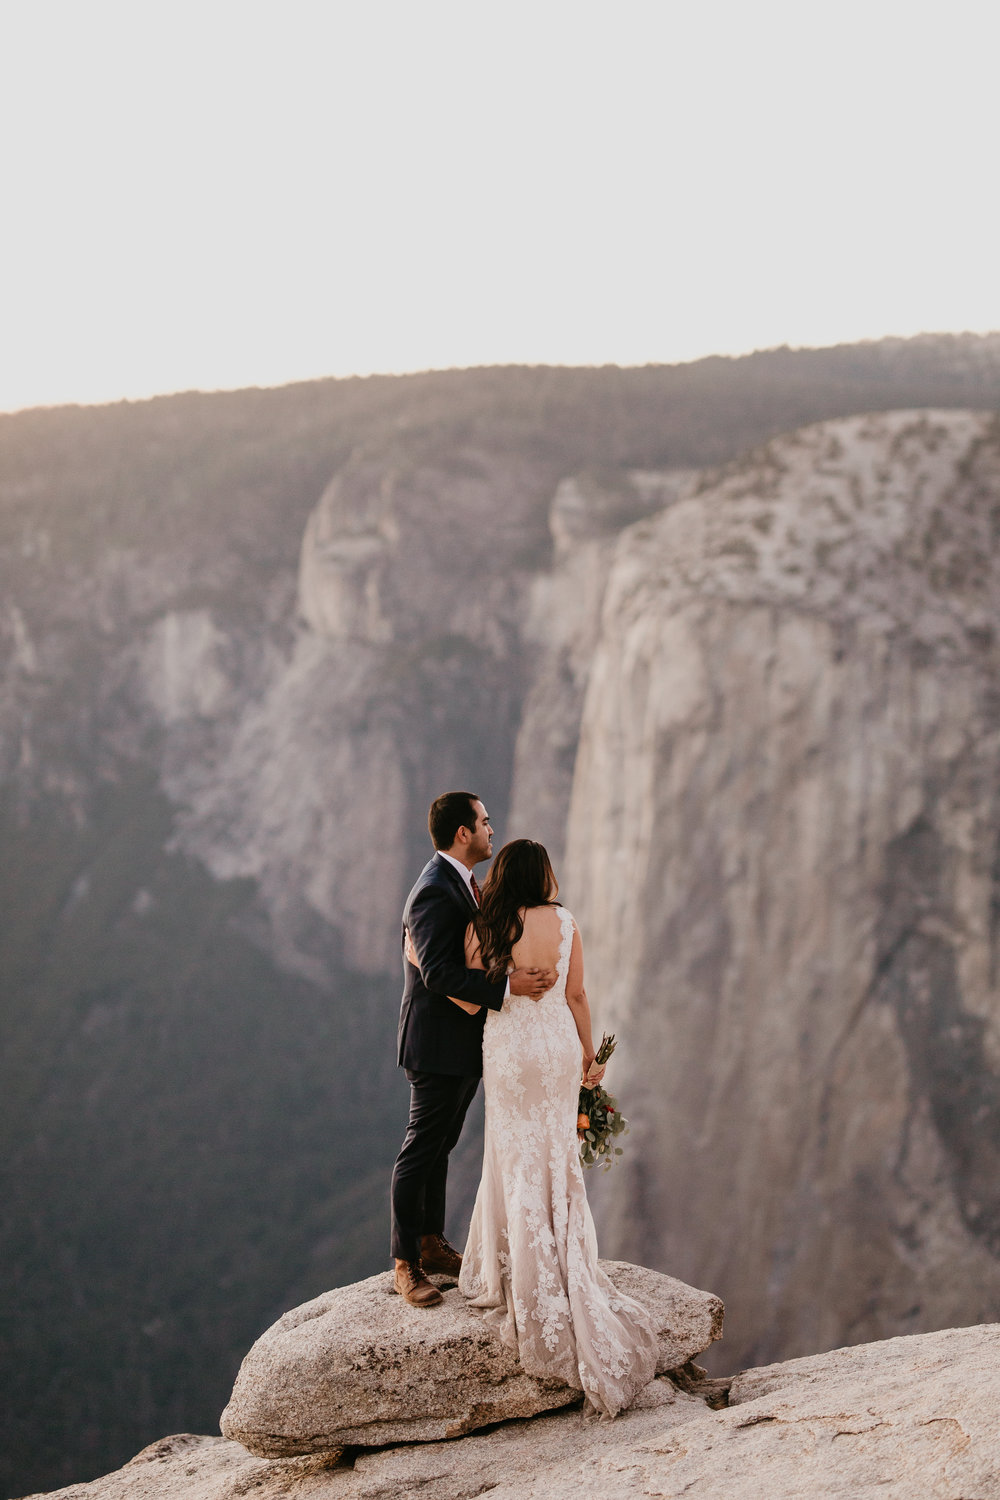 nicole-daacke-photography-yosemite-national-park-elopement-at-taft-point-tunnel-view-yosemite-intimate-wedding-fall-sunset-adventure-elopement-photographer-87.jpg